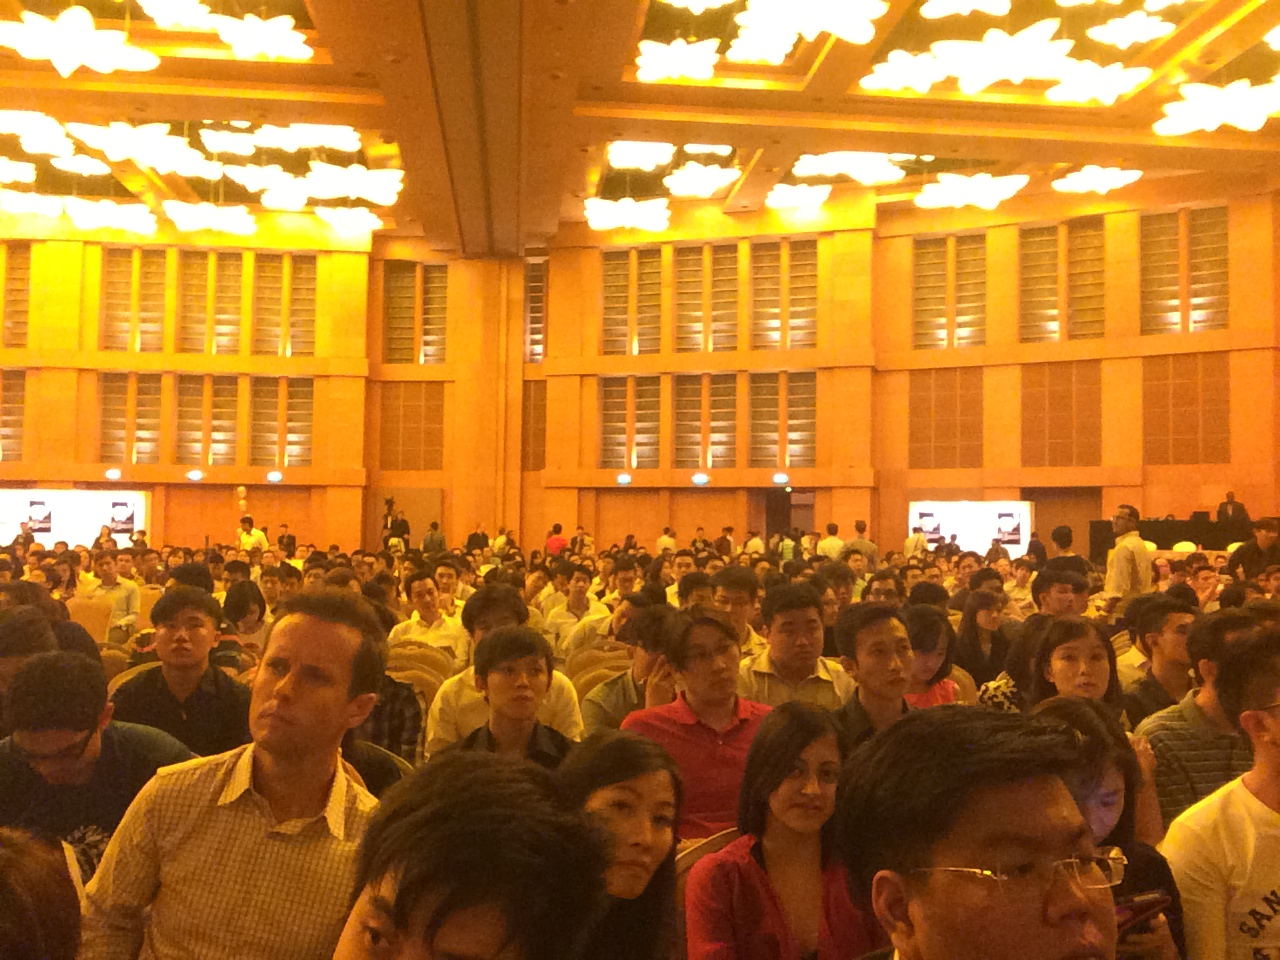 What a huge crowd at RWS!